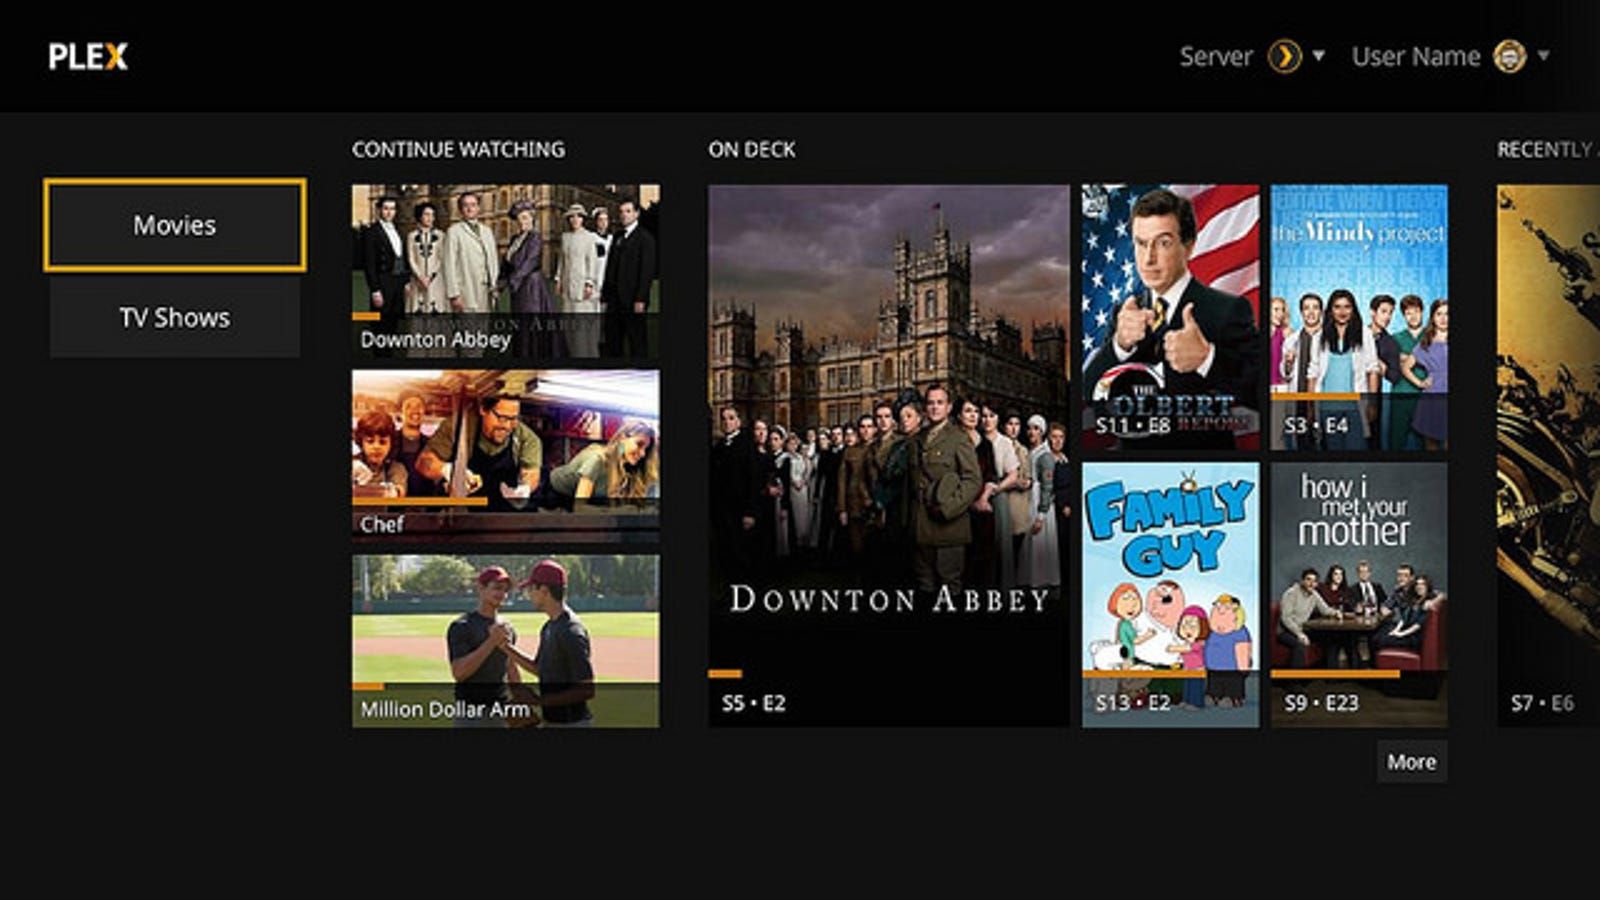 Plex Is Now Available on the PlayStation 3 and 4